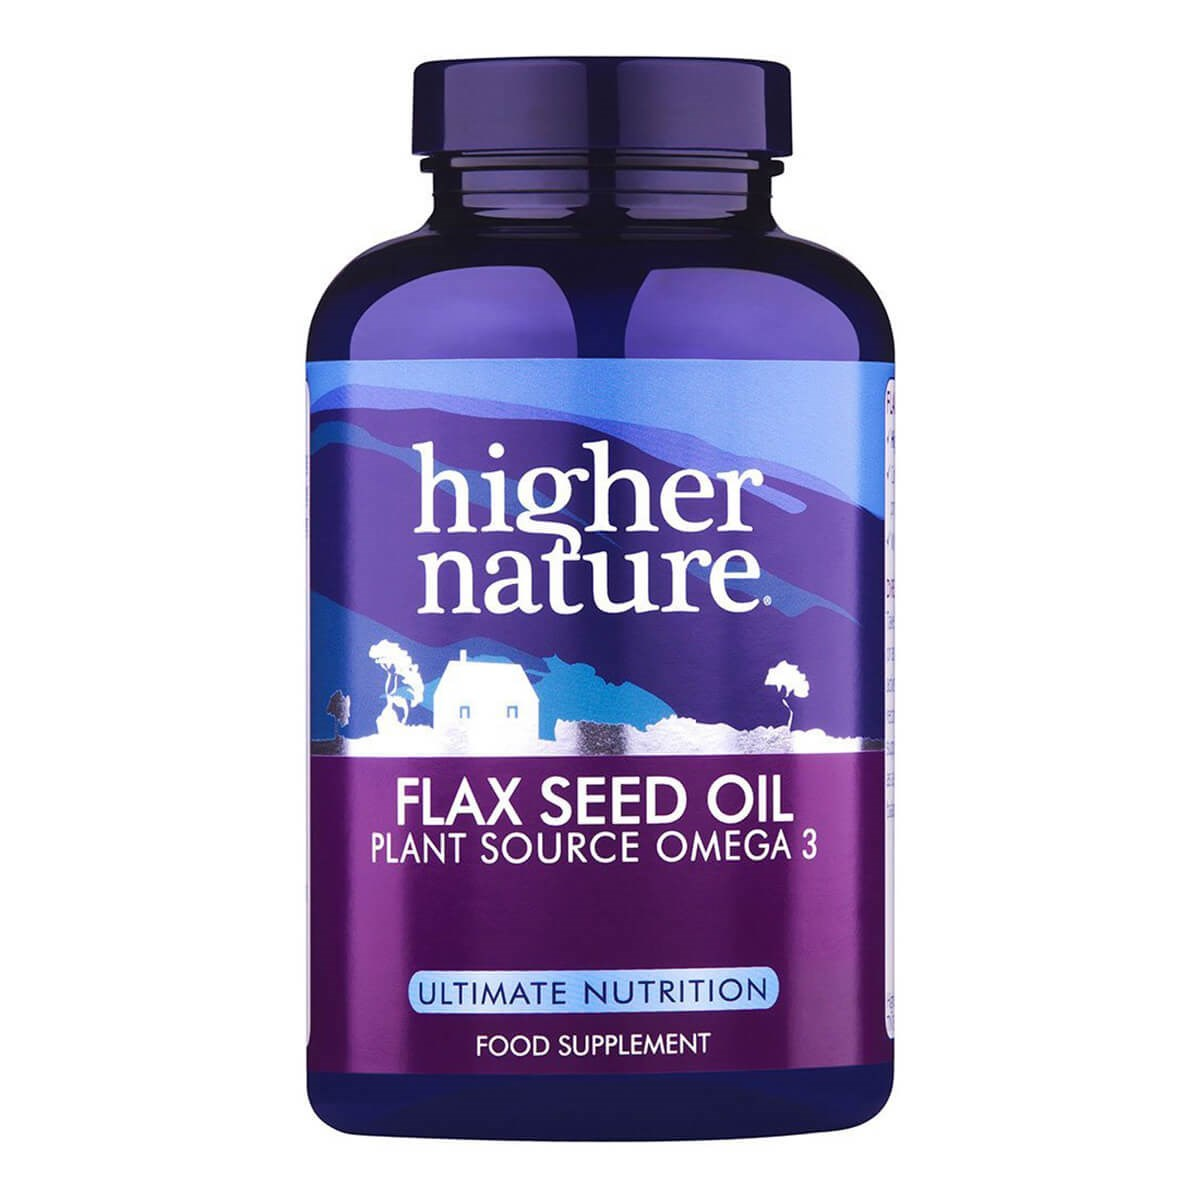 Higher Nature Flax Seed Oil Capsules